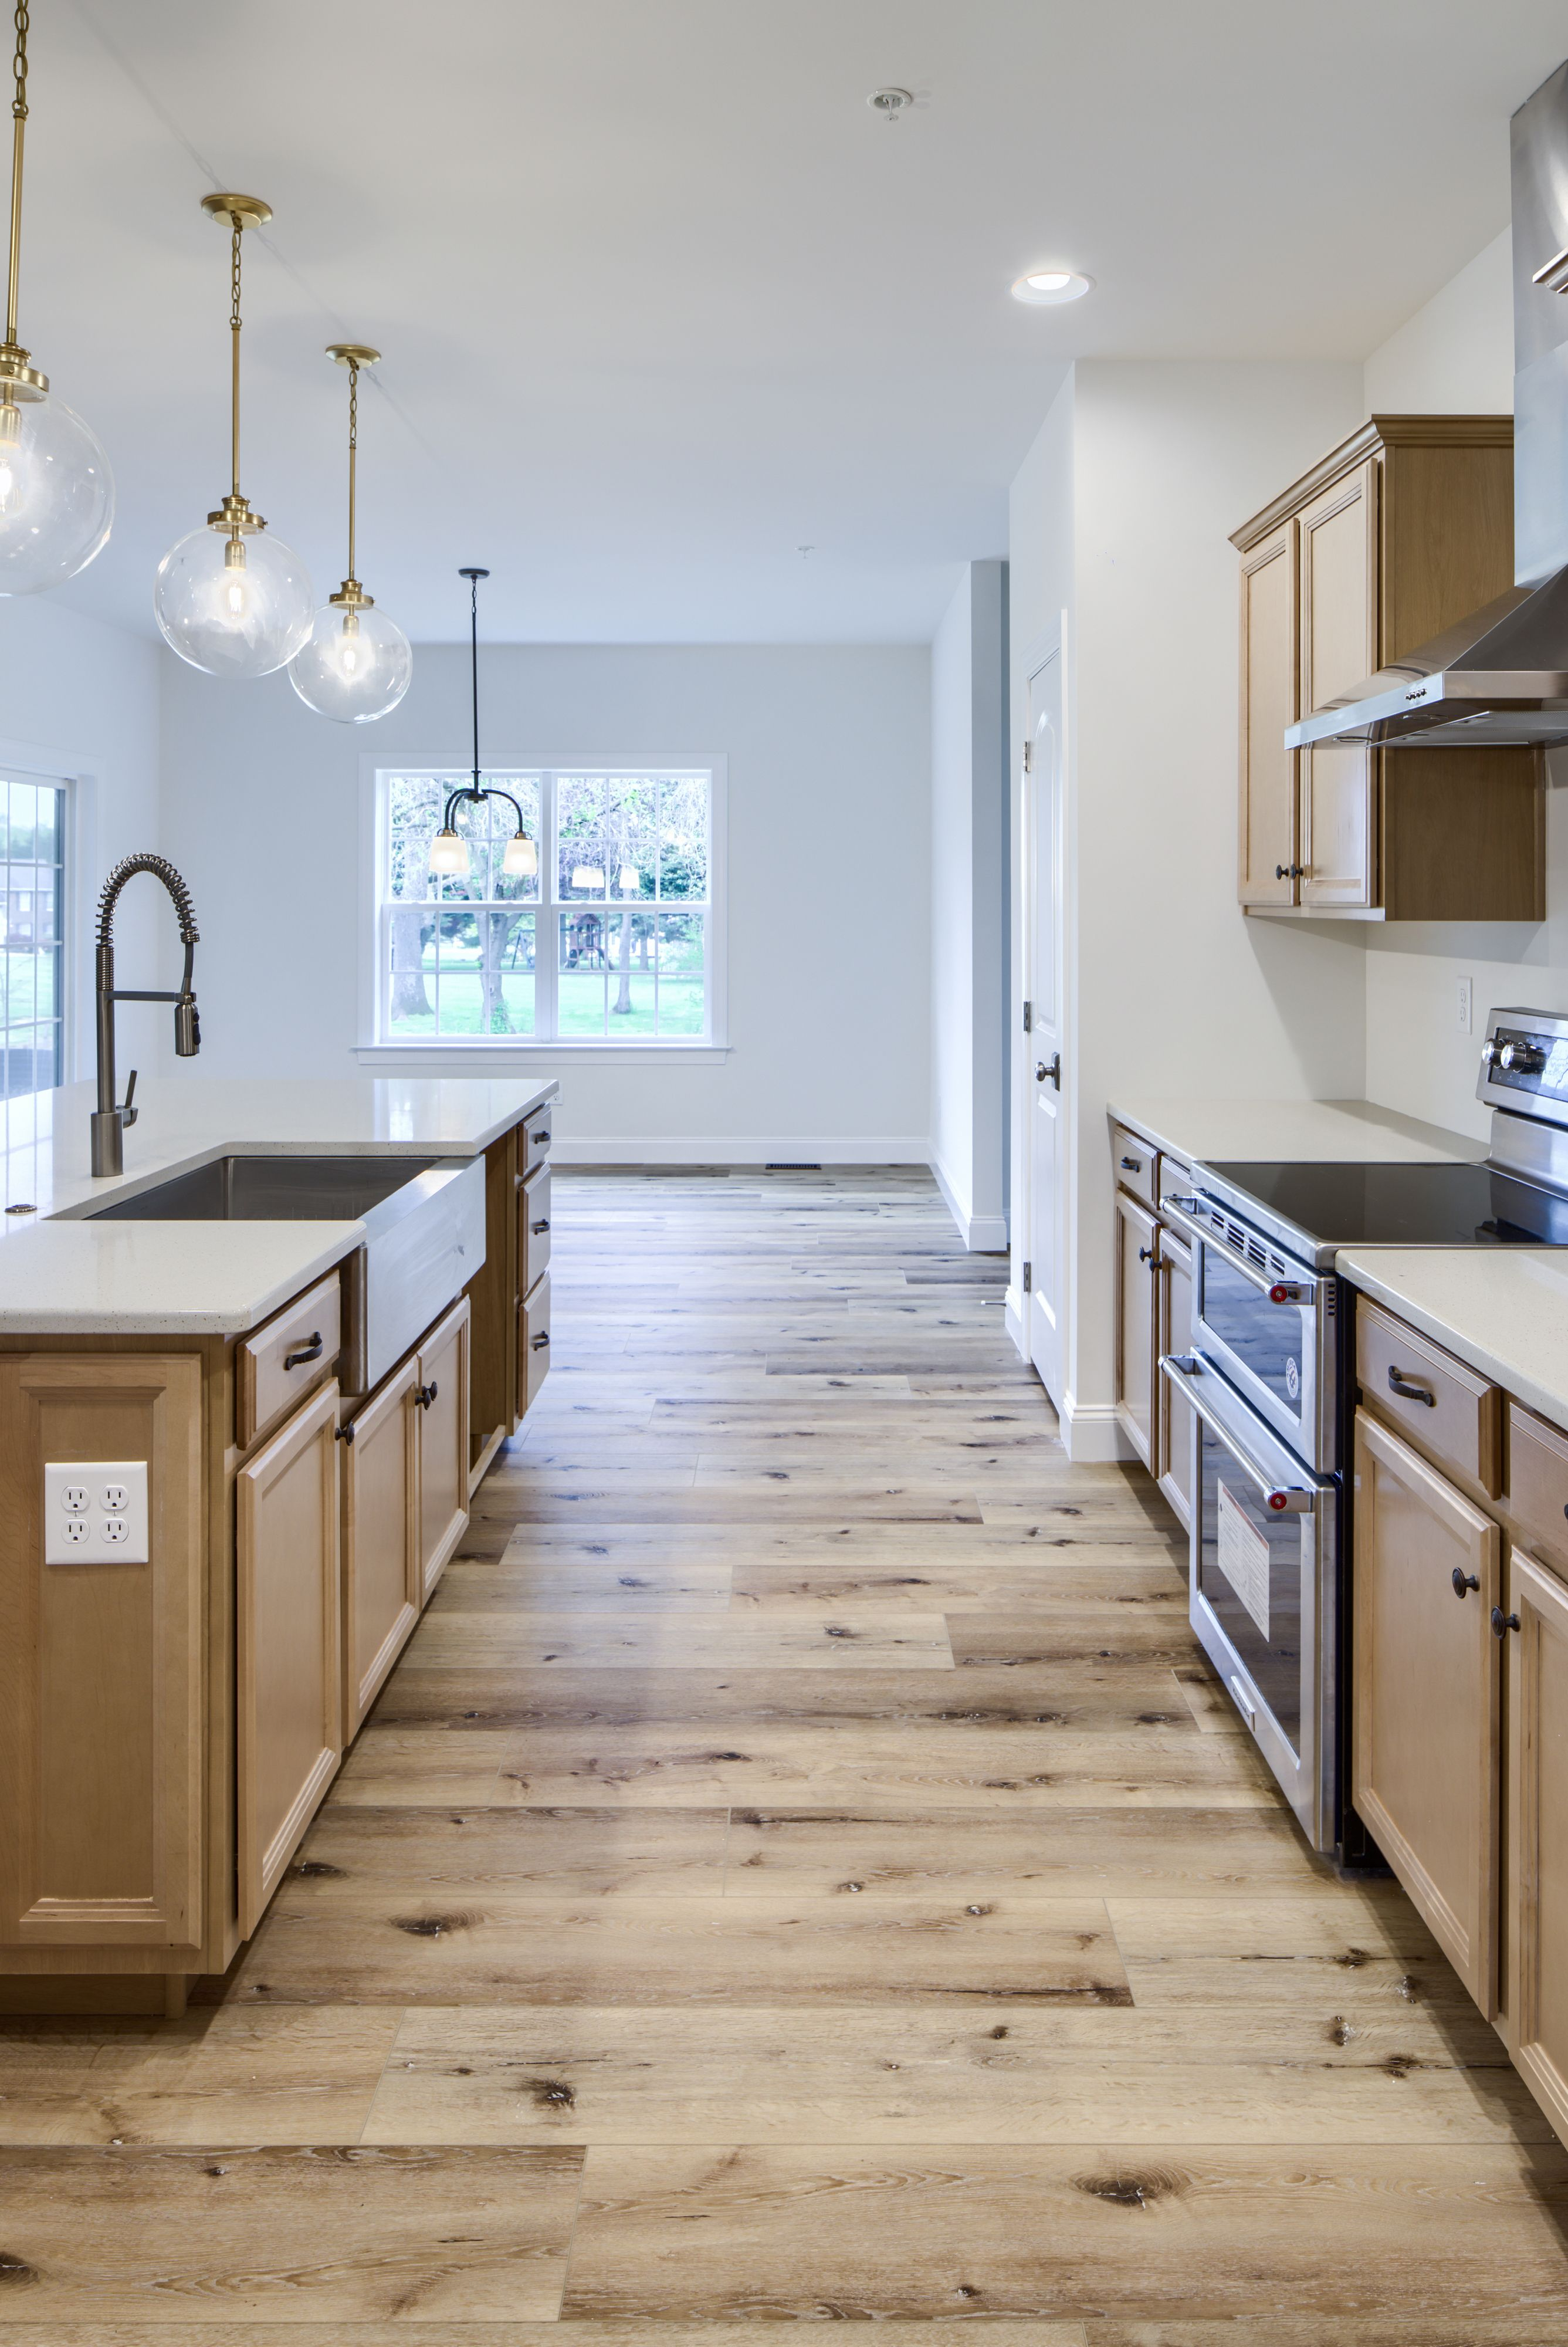 Kitchen featured in the Augusta Bordeaux By Keystone Custom Homes in Baltimore, MD